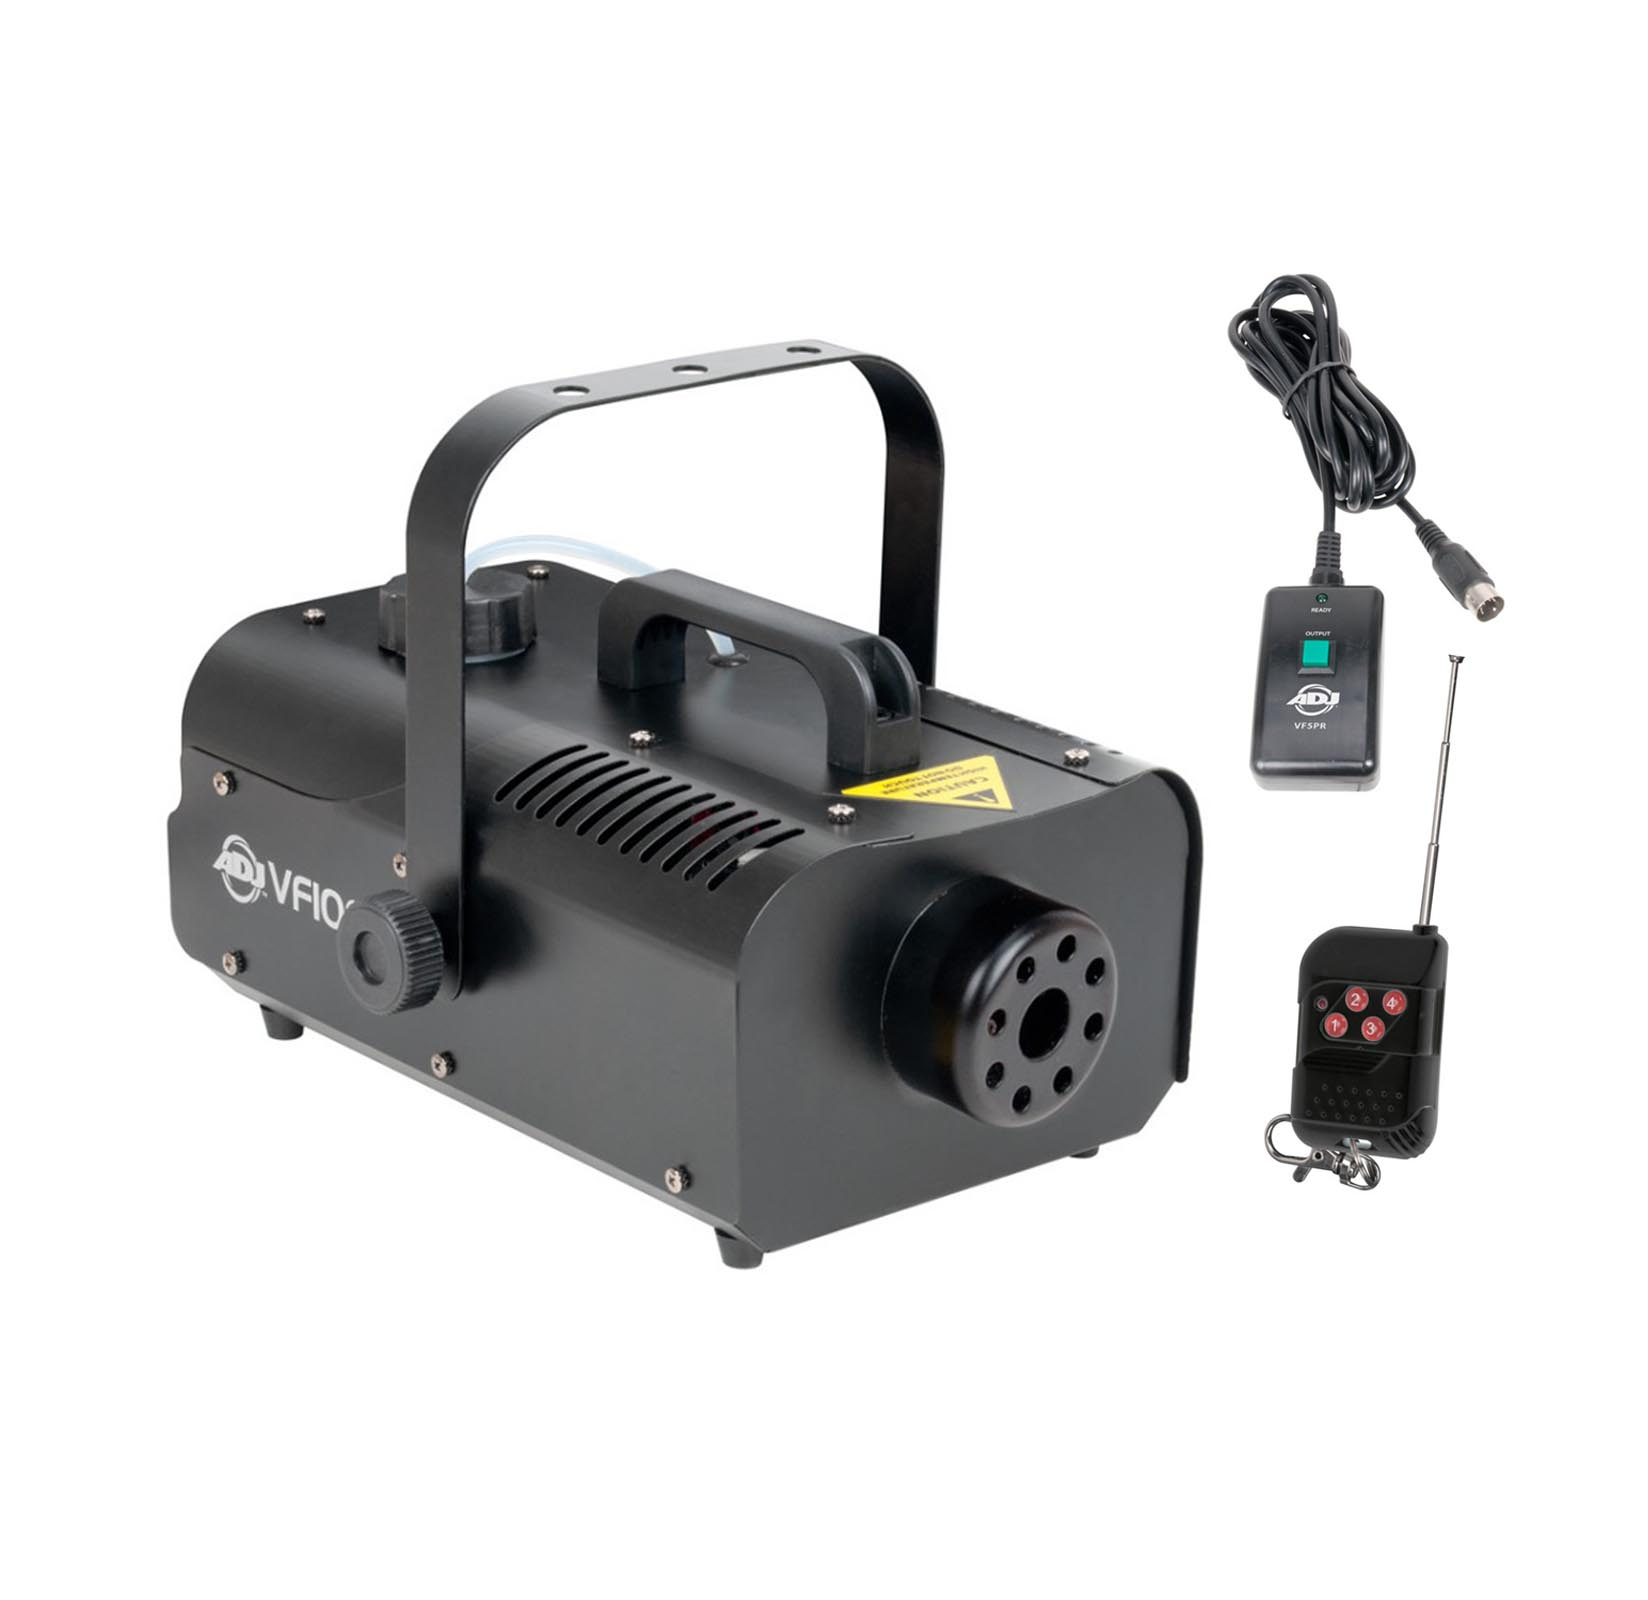 American DJ 1000W 1 Liter Medium Size Mobile Smoke Fog Machine w  Remotes VF1000 by ADJ